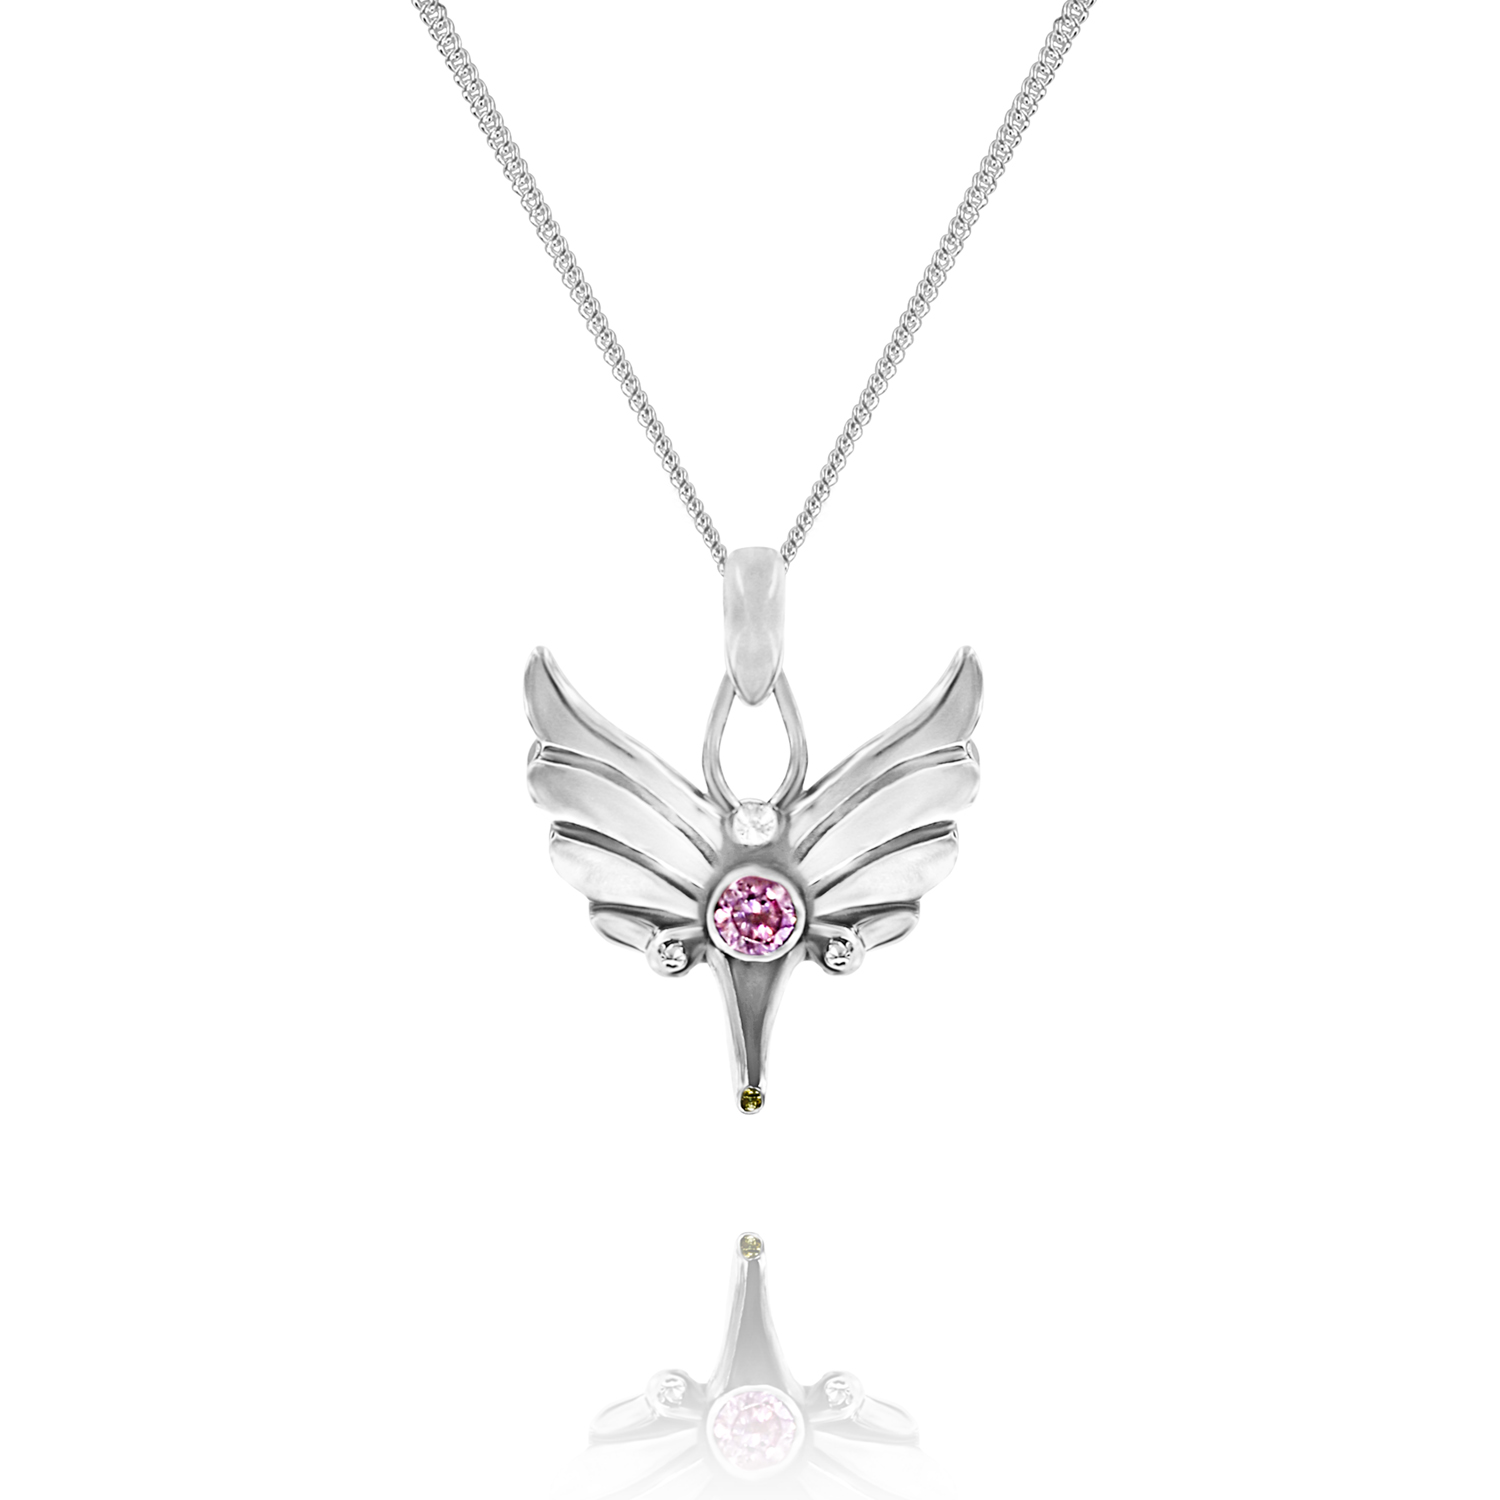 jewellery newhope products new sterling information silver product hope angel of pendant